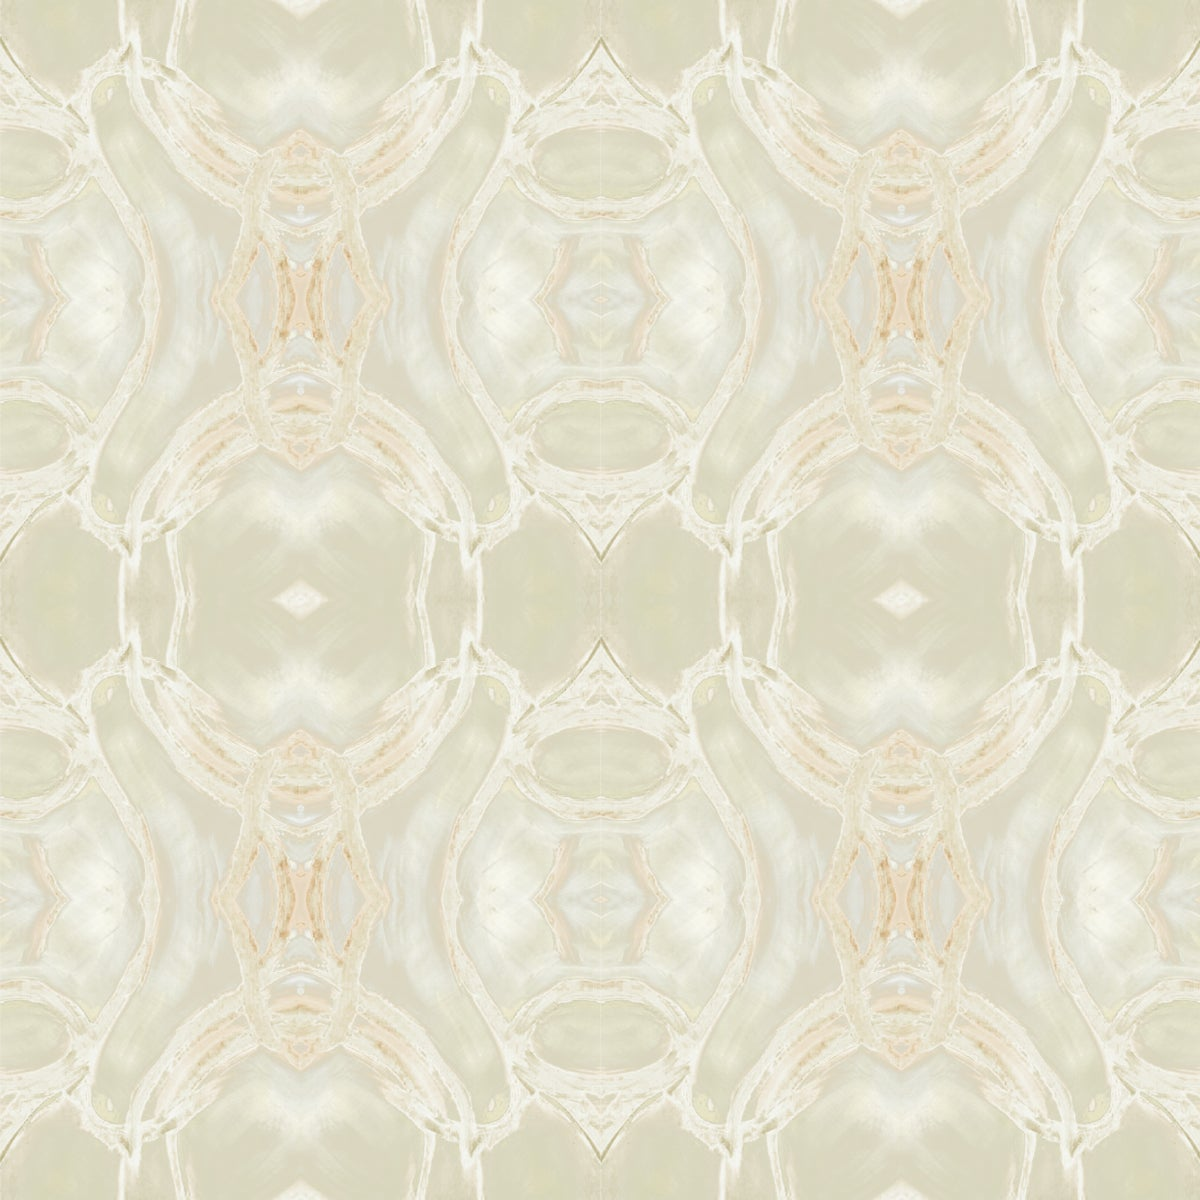 Image of 4100-A Wallpaper/Fabric